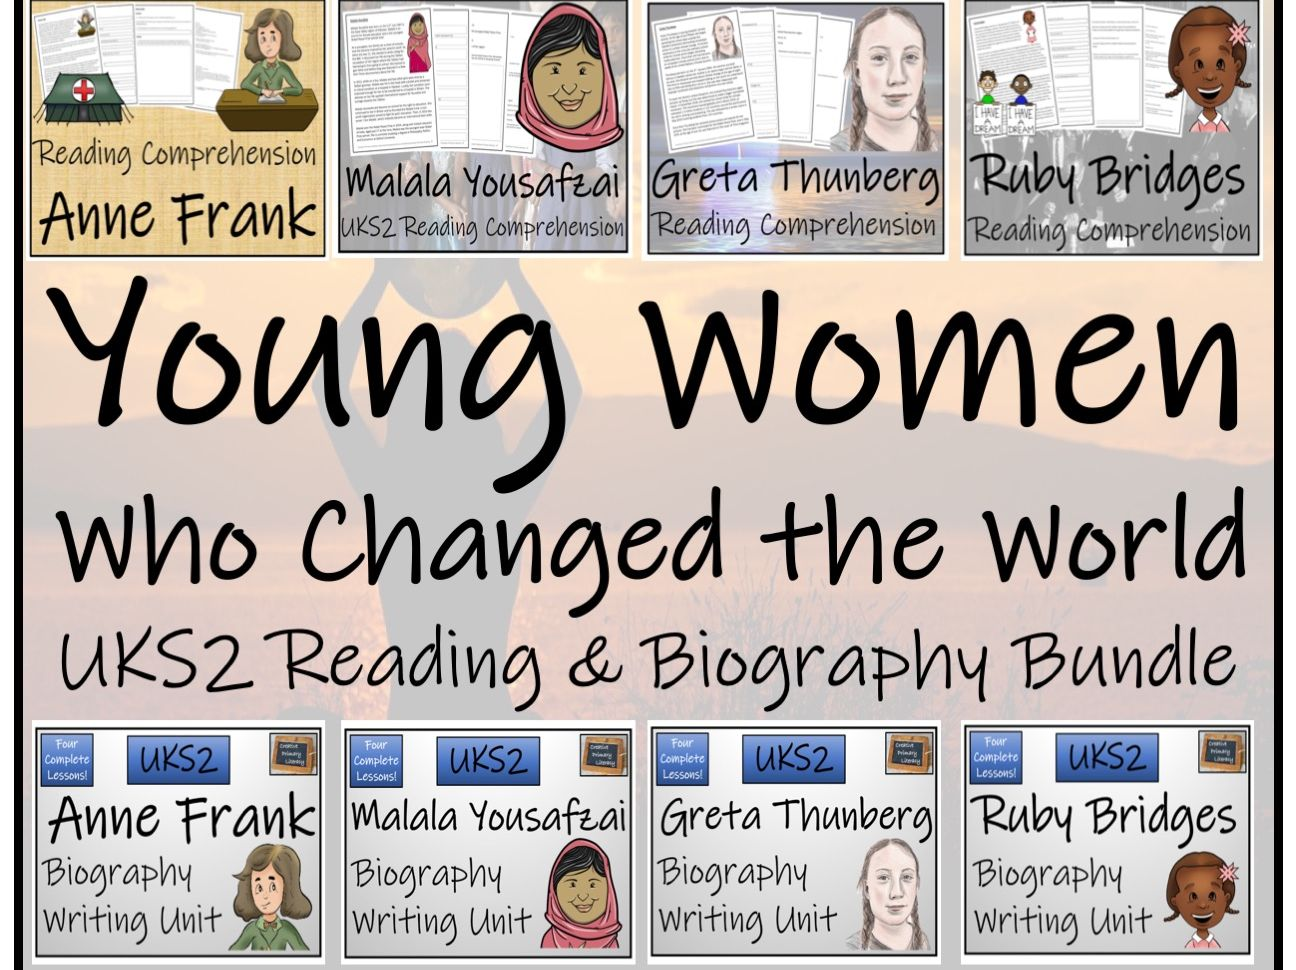 UKS2 - Young Women Who Changed the World Reading Comprehension & Biography Bundle